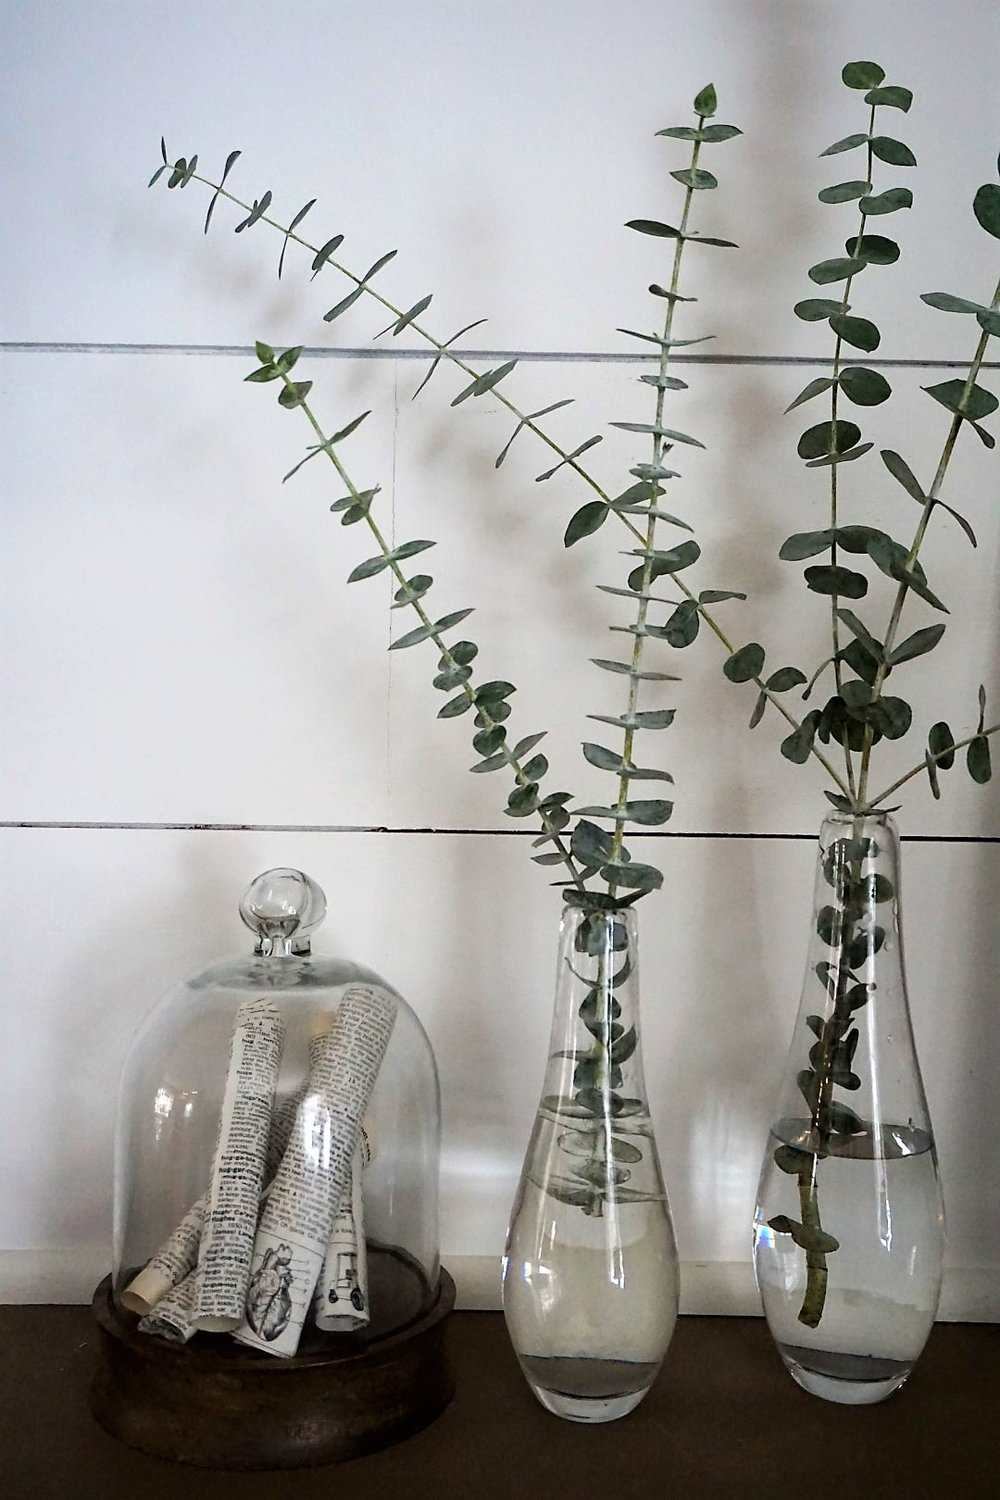 Eucalyptus looks perfect in clear glass thrift store vases.